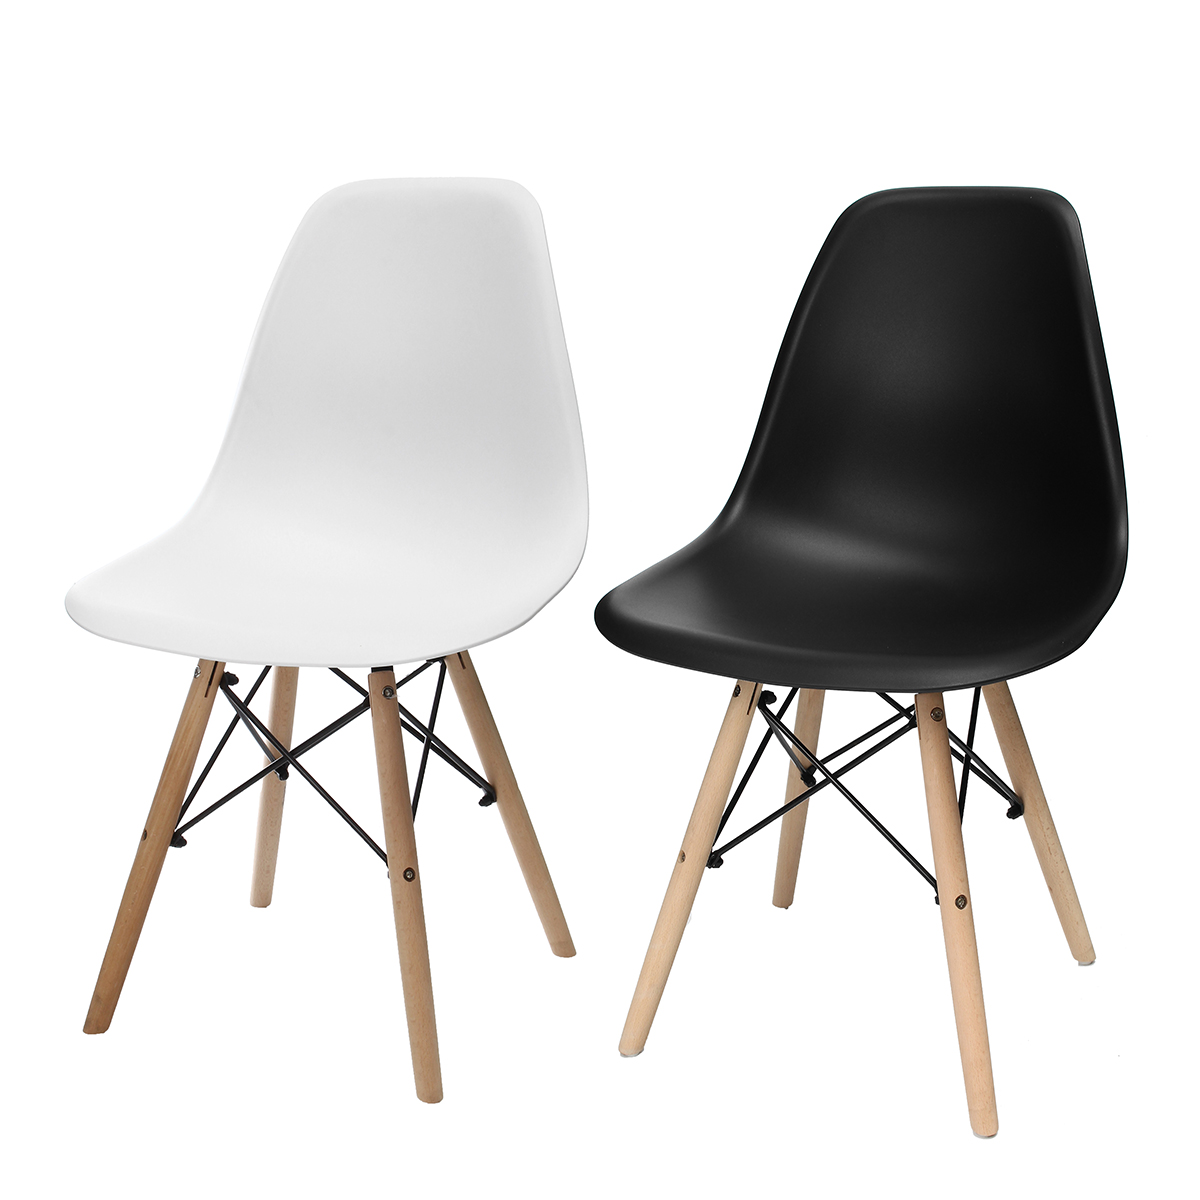 Awe Inspiring 4Pcs Modern Wood Dining Chairs Minimalist Computer Office Chair Casual Home Back Seat Coffee Shop Chair Furniture White Black Cjindustries Chair Design For Home Cjindustriesco